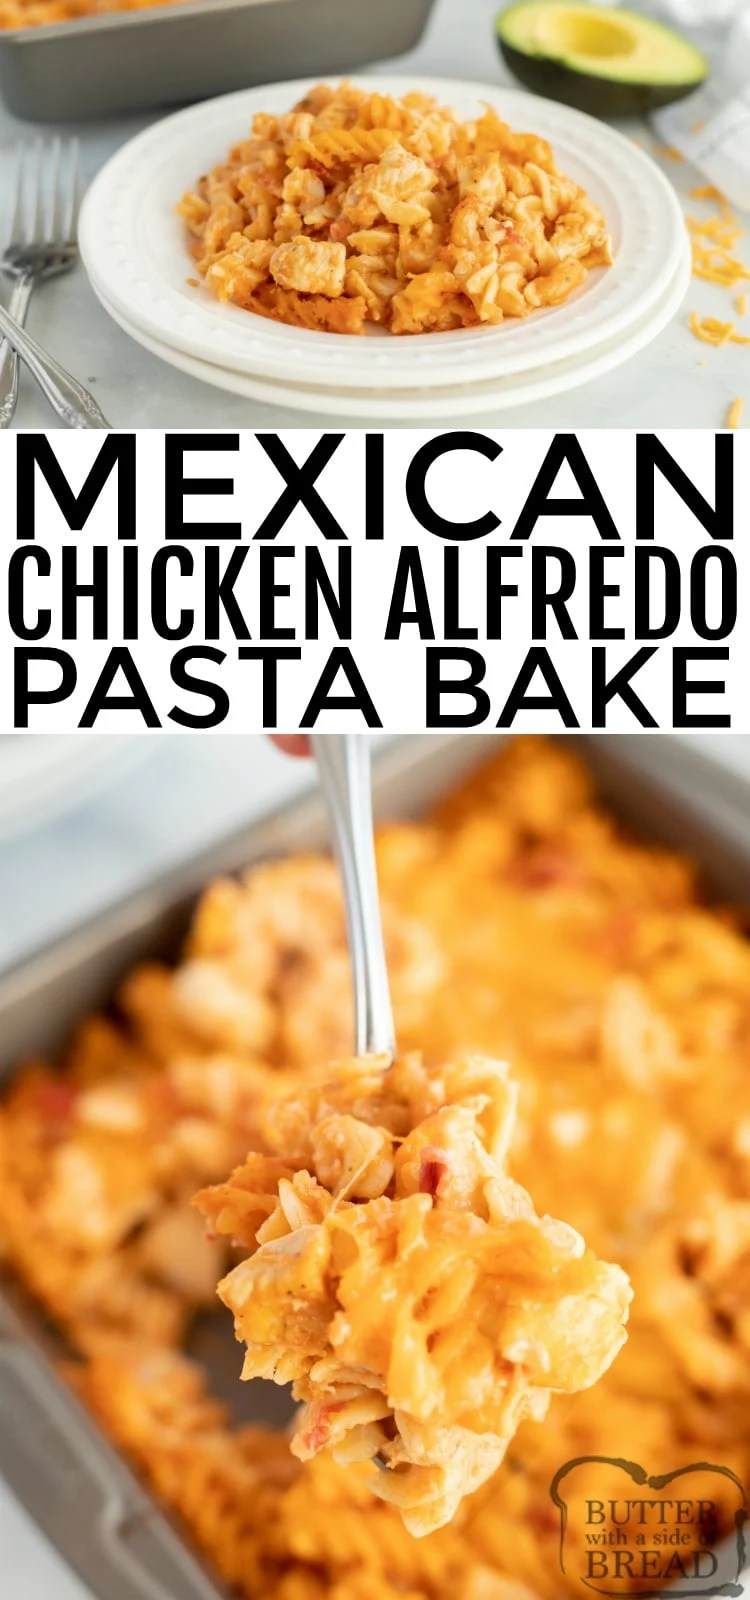 Mexican Chicken Alfredo Pasta Bake is a quick and easy dinner recipe that adds a southwestern twist to chicken alfredo. This baked alfredo recipe includes chicken, alfredo sauce, salsa, taco seasoning and lots of cheese!